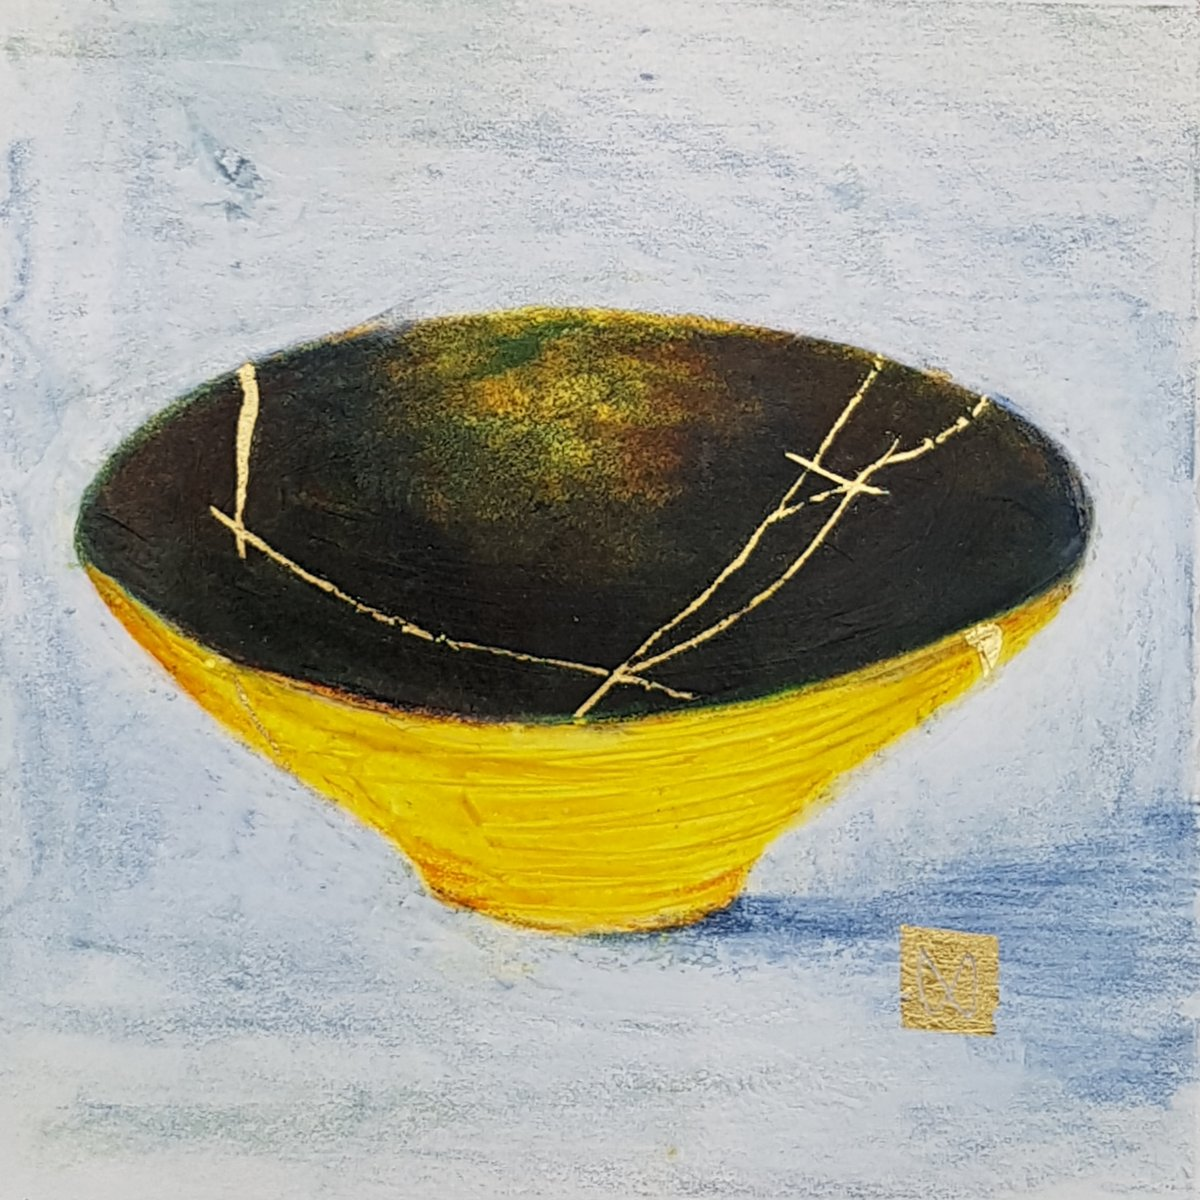 painting of Japanese kintsugi Summer tea bowl with gold by Irish artist lemon yellow mossy green